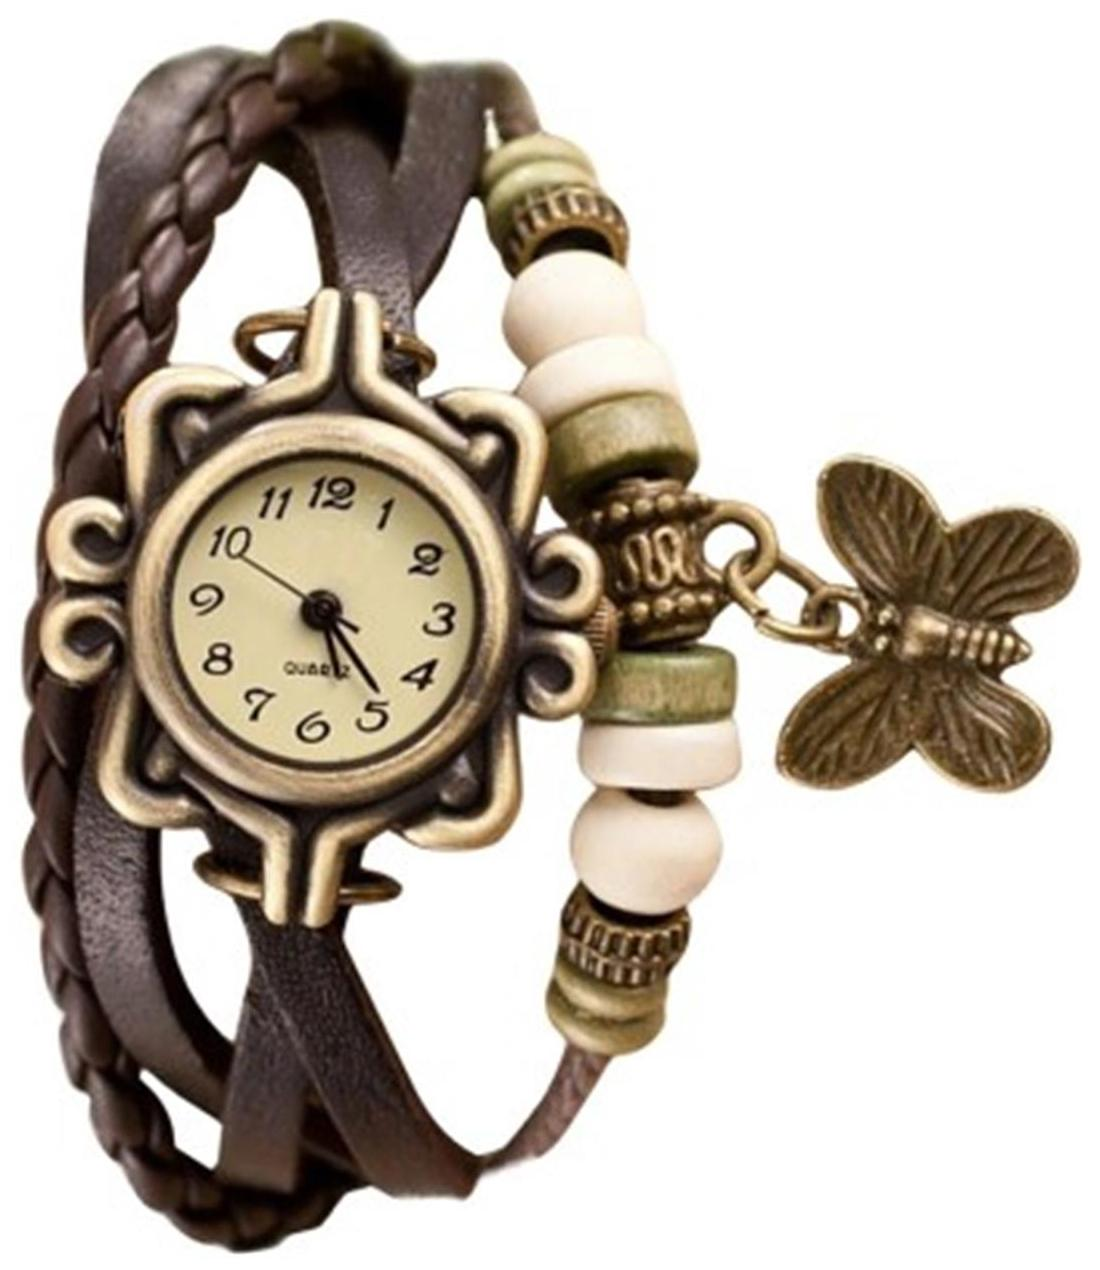 ELY Brown Analog Watch image